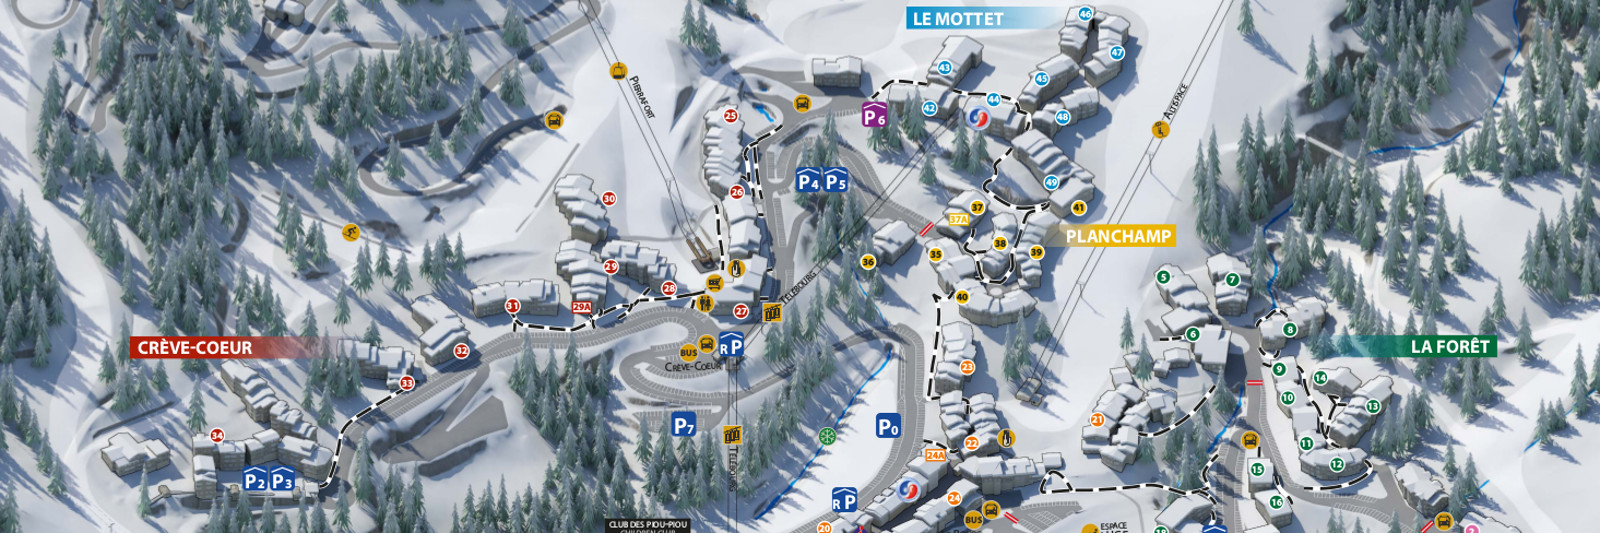 valmorel_map